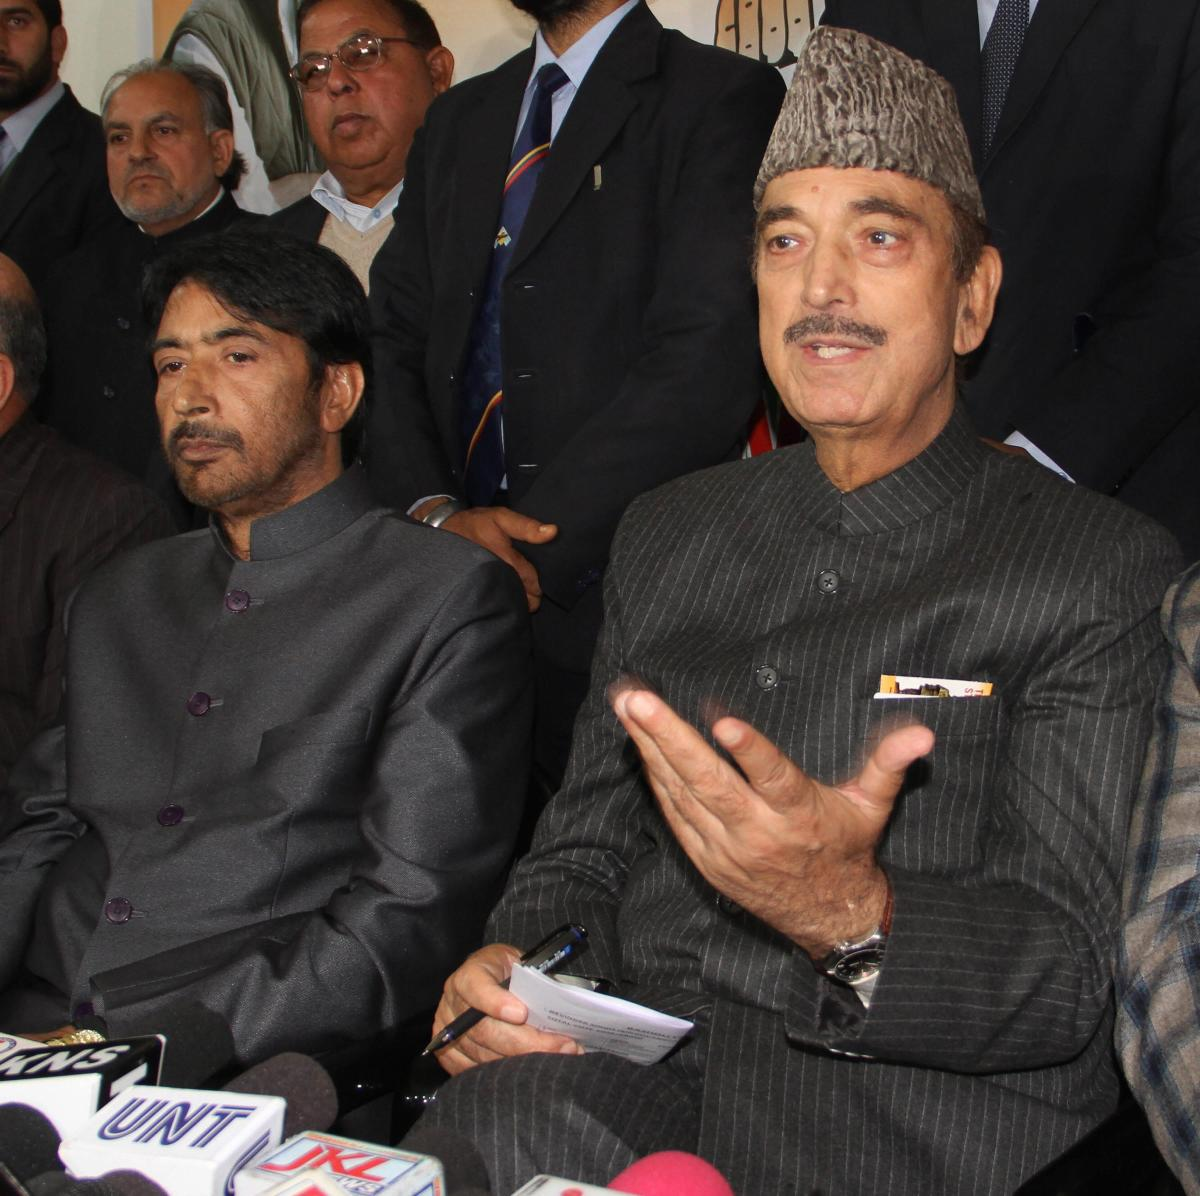 Senior Congress leader Ghulam Nabi Azad and JKPCC President GA Mir at a press conference, in Jammu on Saturday. (PTI Photo)